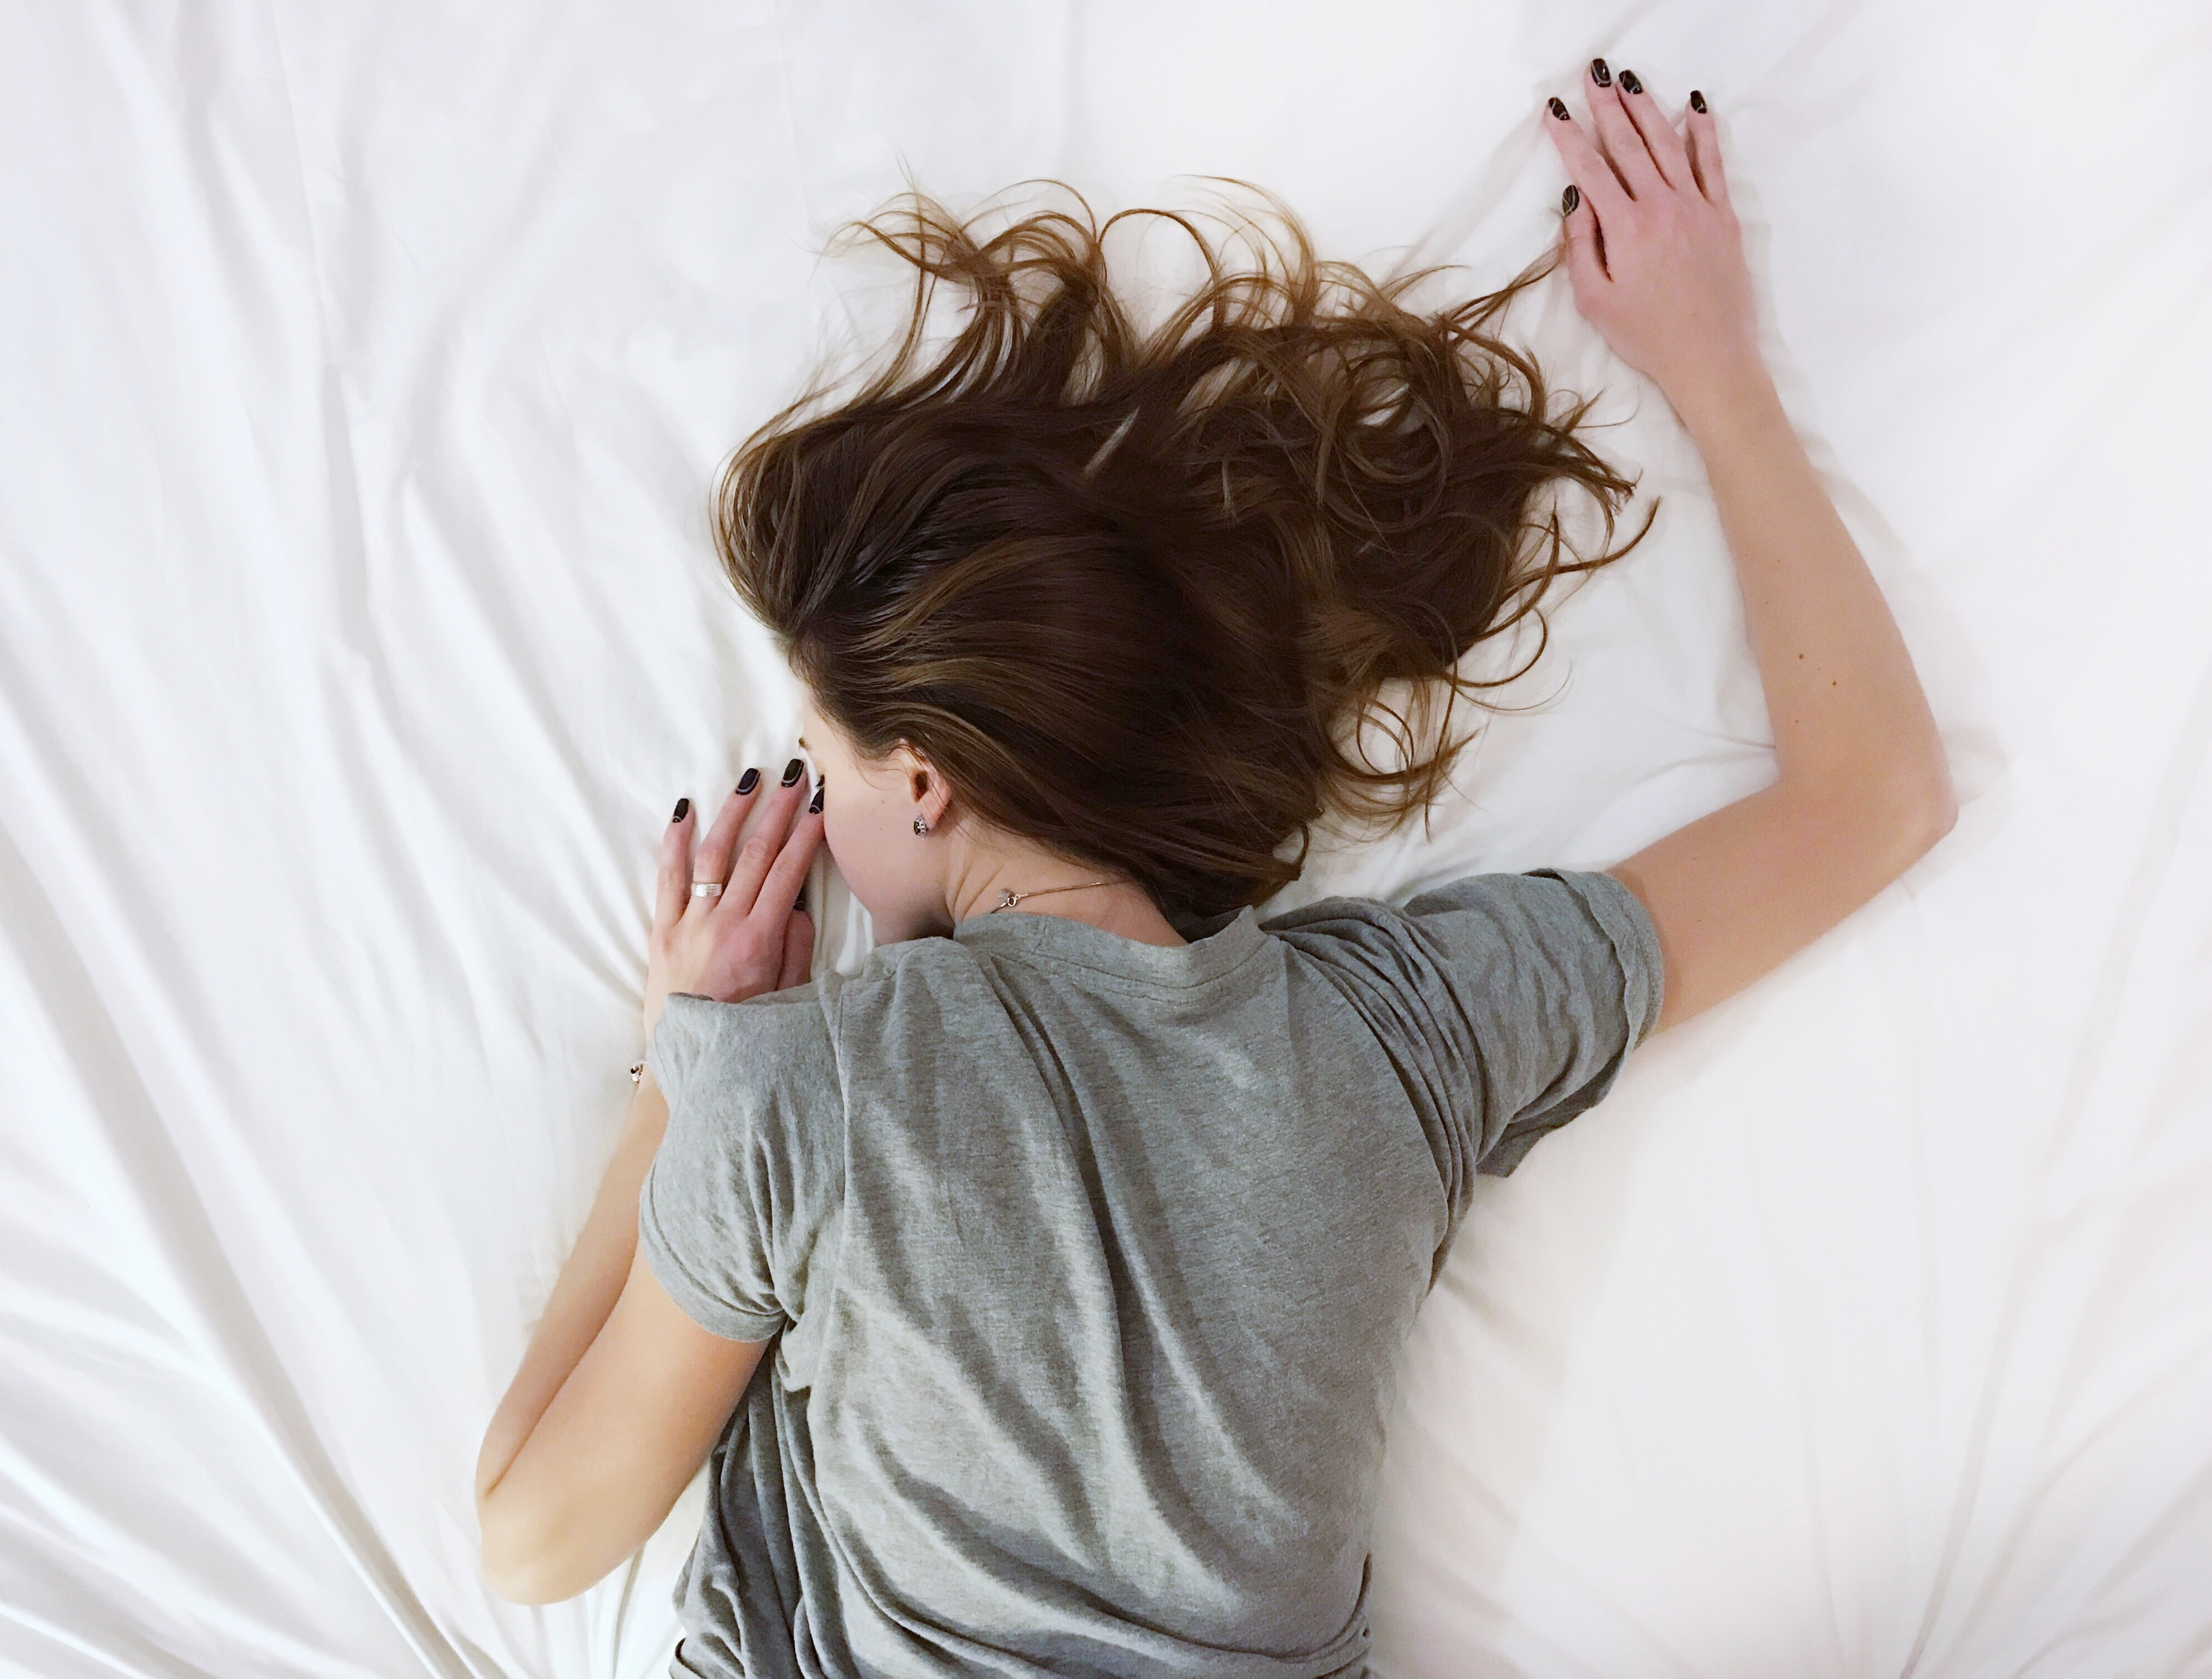 What is narcolepsy? Do you have excessive daytime sleepiness? Read more about my narcolepsy story here: www.saunderssays.com